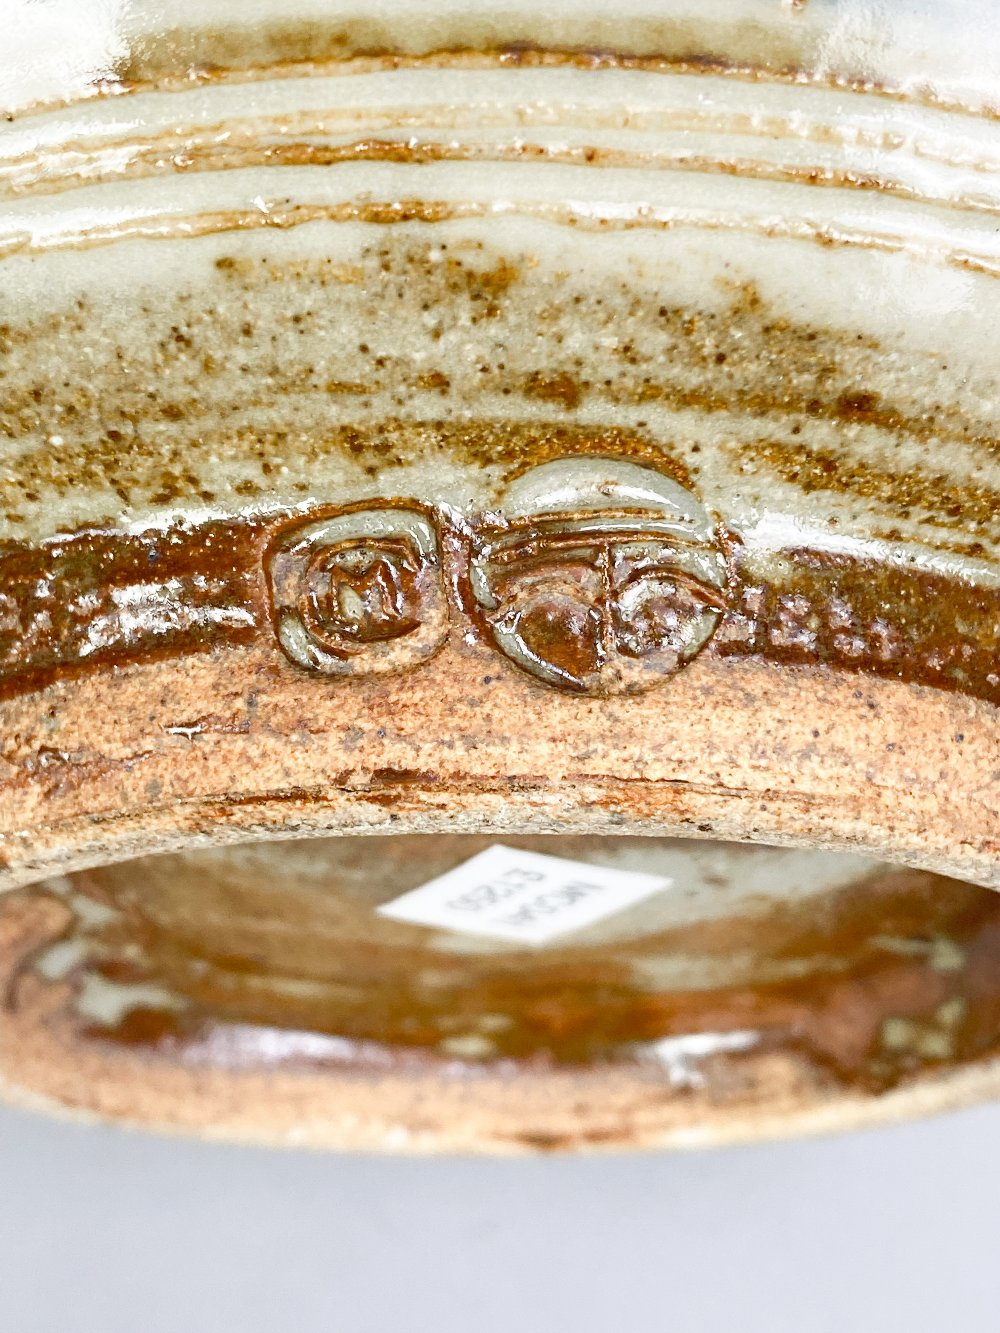 MICHAEL CARDEW (1901-1983) for Wenford Bridge Pottery; a stoneware footed bowl with iron and - Image 5 of 5